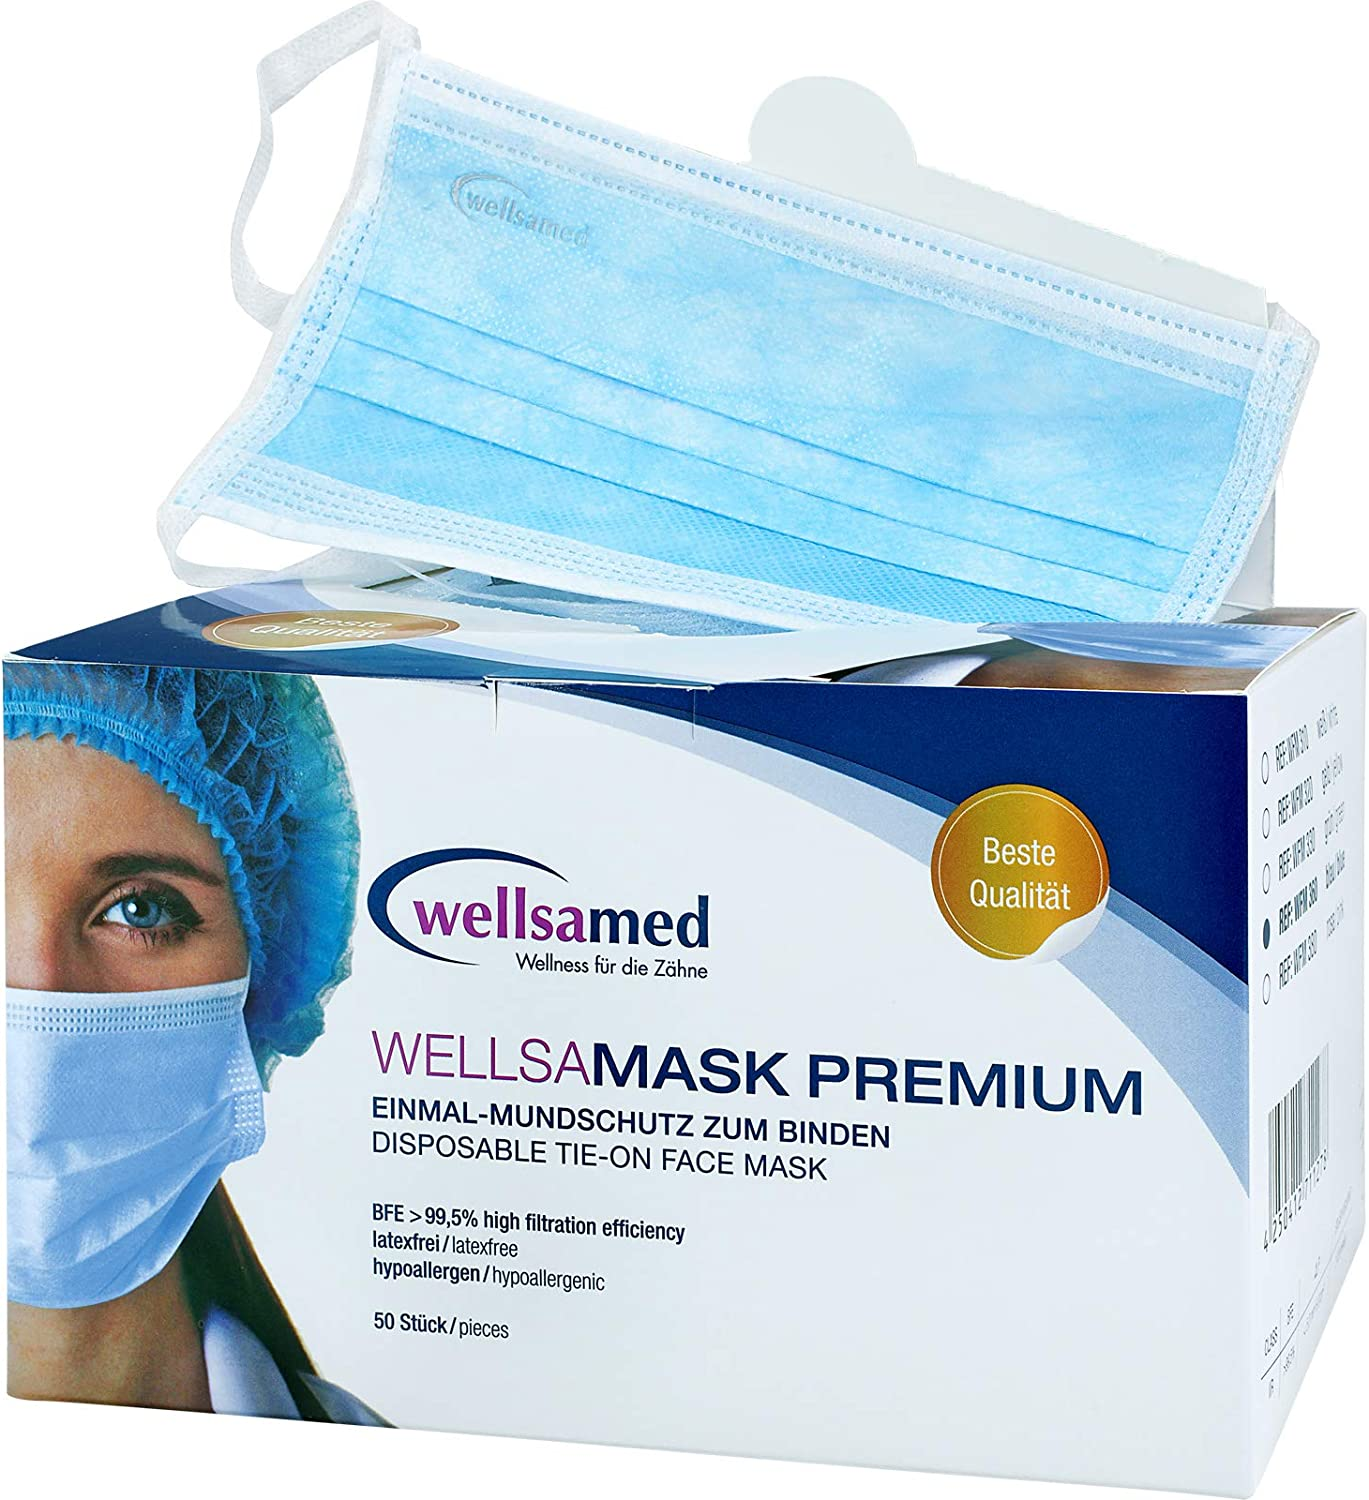 wellsamask disposable surgical masks